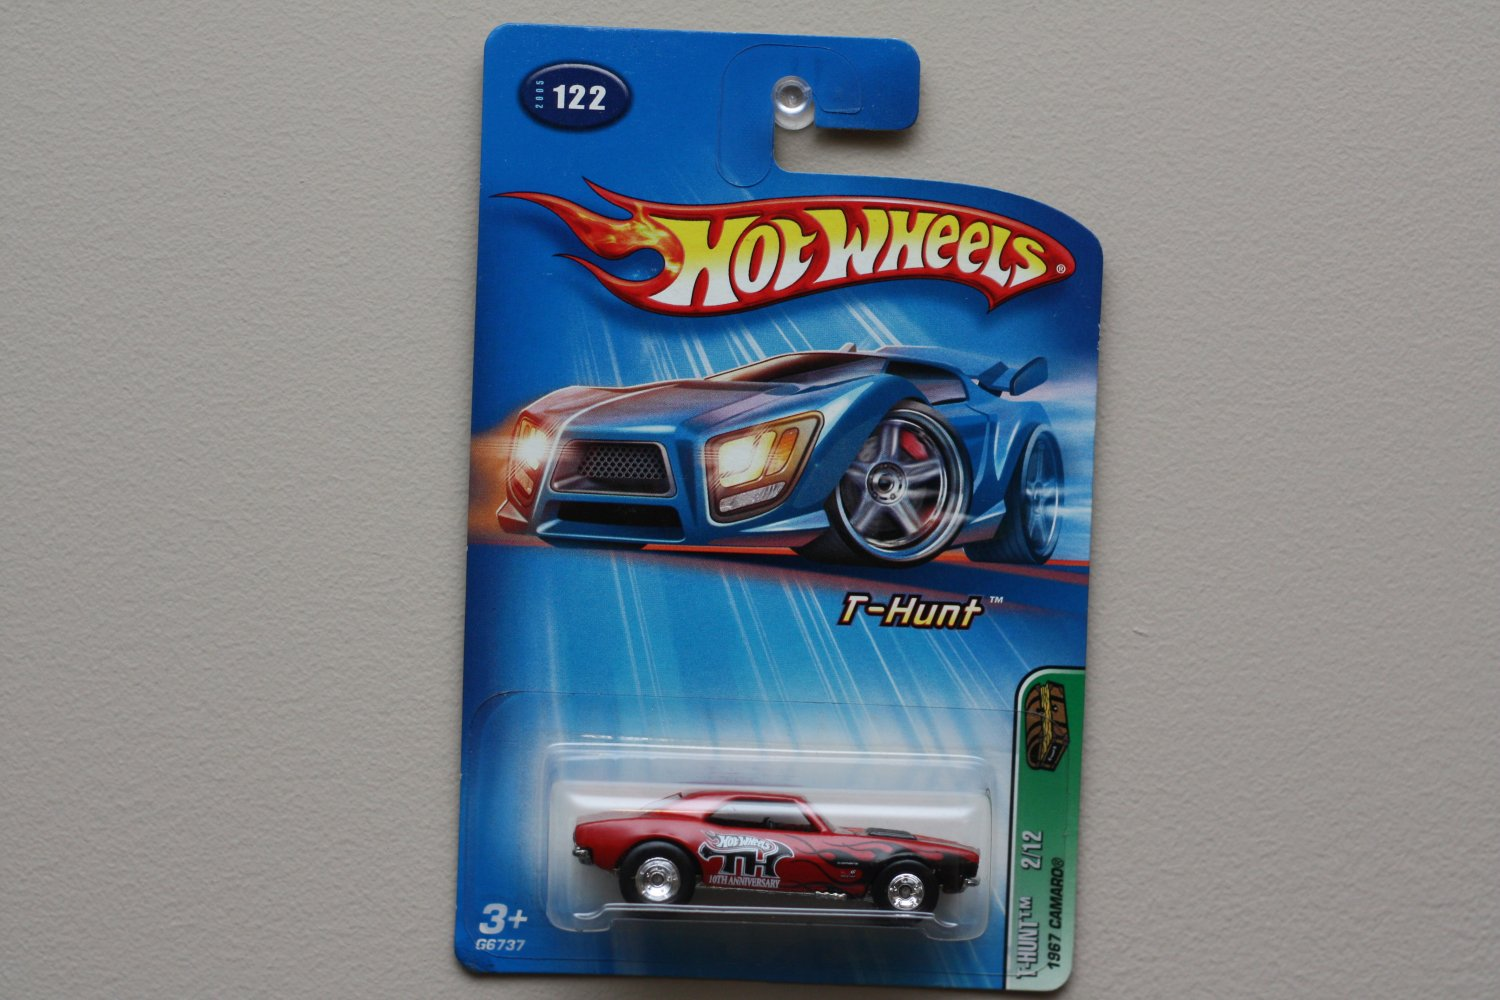 Hot Wheels 2005 Treasure Hunts (T-Hunts) '67 Camaro